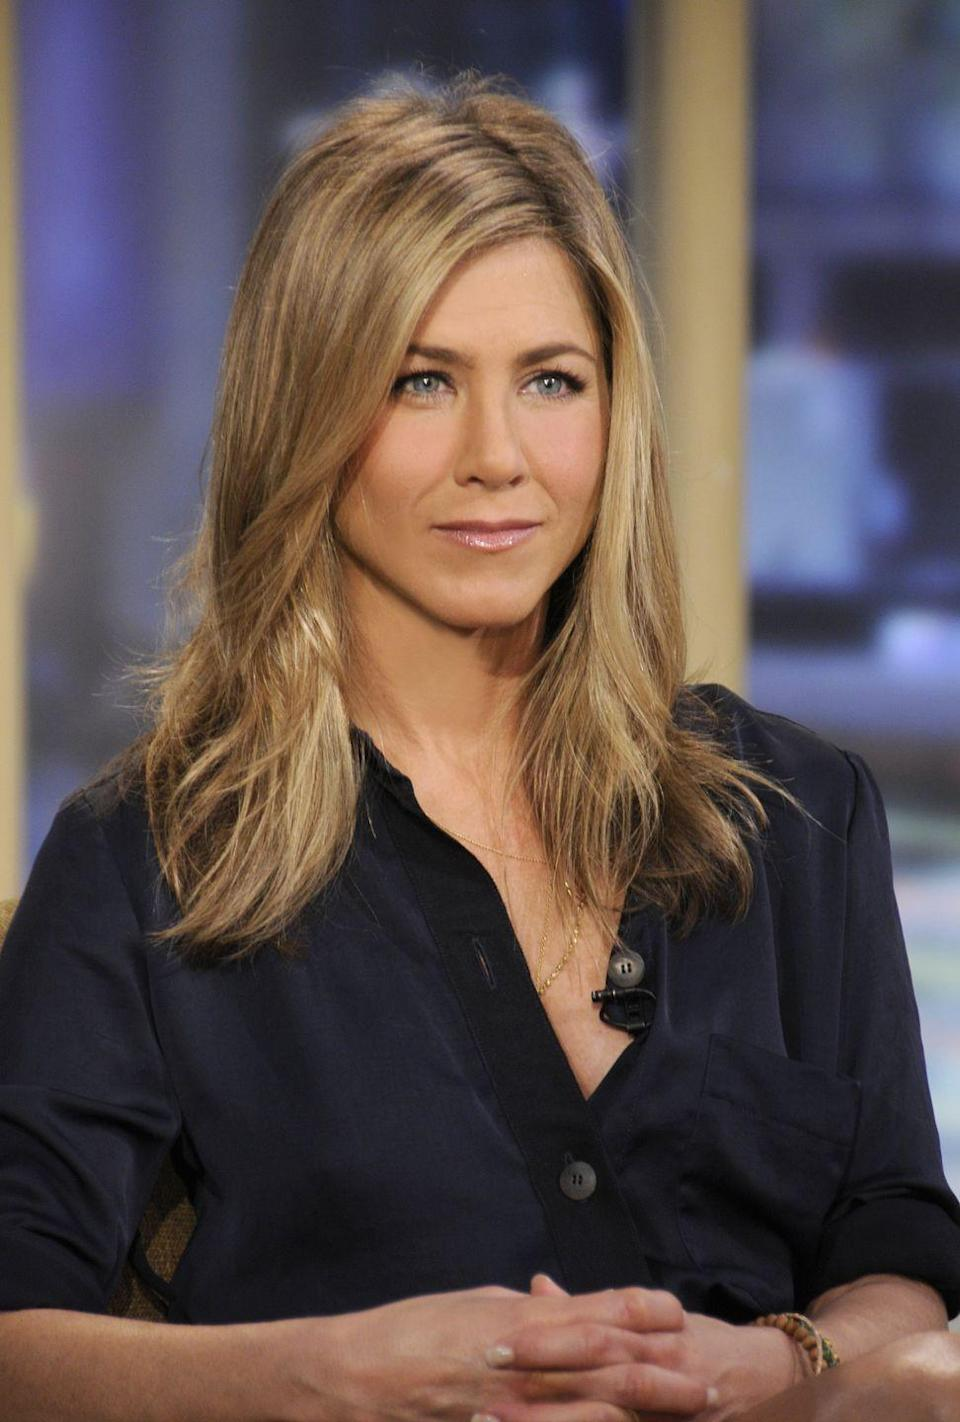 """<p>When Jen wakes up, she takes a mindful approach to her day. She told <a href=""""https://www.womenshealthmag.com/weight-loss/a29547718/jennifer-aniston-reese-witherspoon-intermittent-fasting/"""" rel=""""nofollow noopener"""" target=""""_blank"""" data-ylk=""""slk:Radio Times"""" class=""""link rapid-noclick-resp"""">Radio Times</a> that she has a celery juice and meditates before jumping into a workout.</p>"""